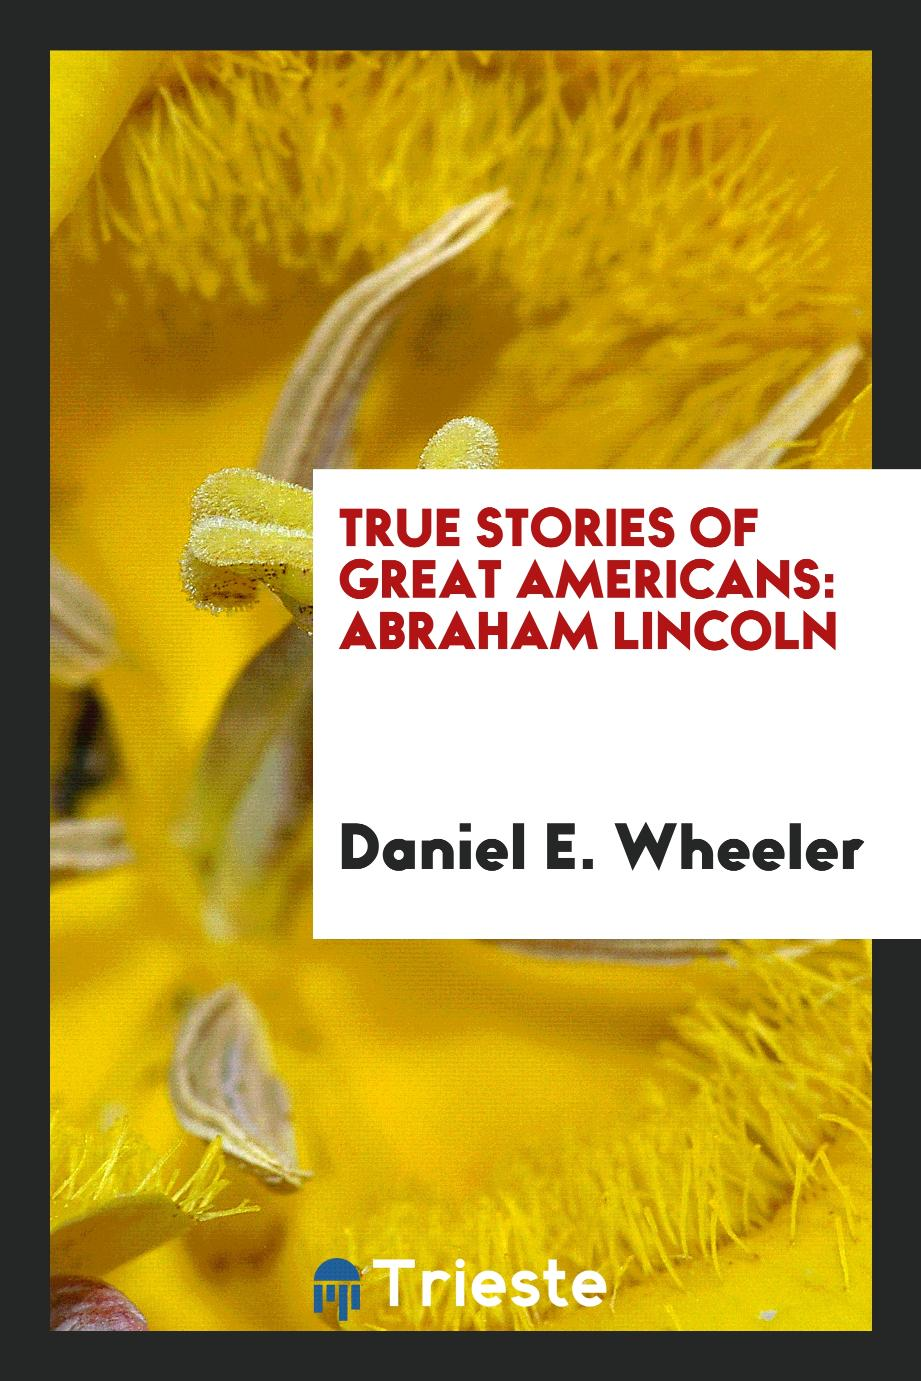 True Stories of Great Americans: Abraham Lincoln